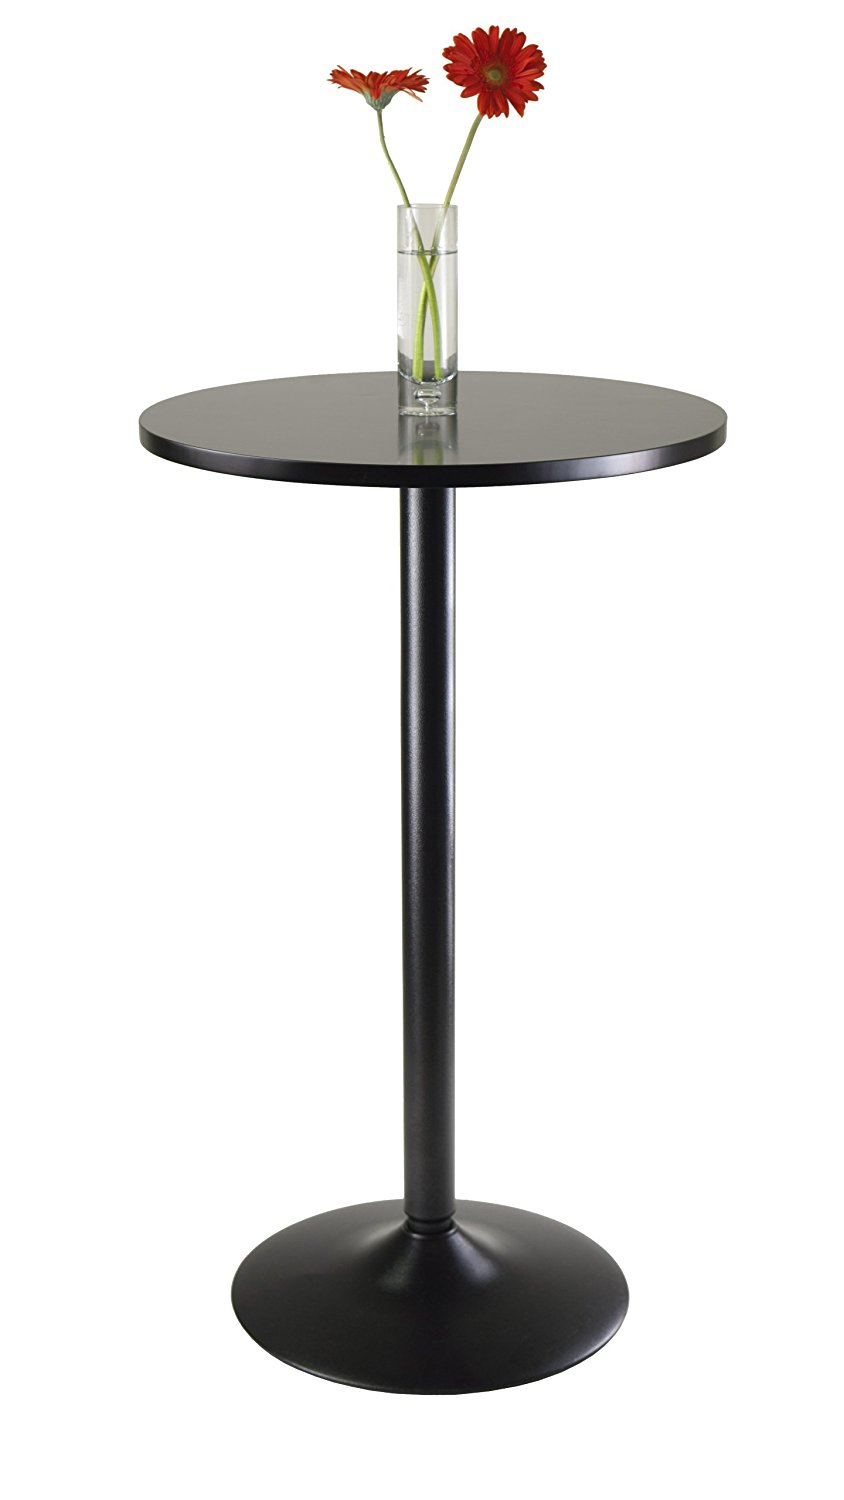 Winsome Obsidian Pub Table Round Black Mdf Top with Black Leg And Base - 23.7-Inch Top, 39.76-Inch Height